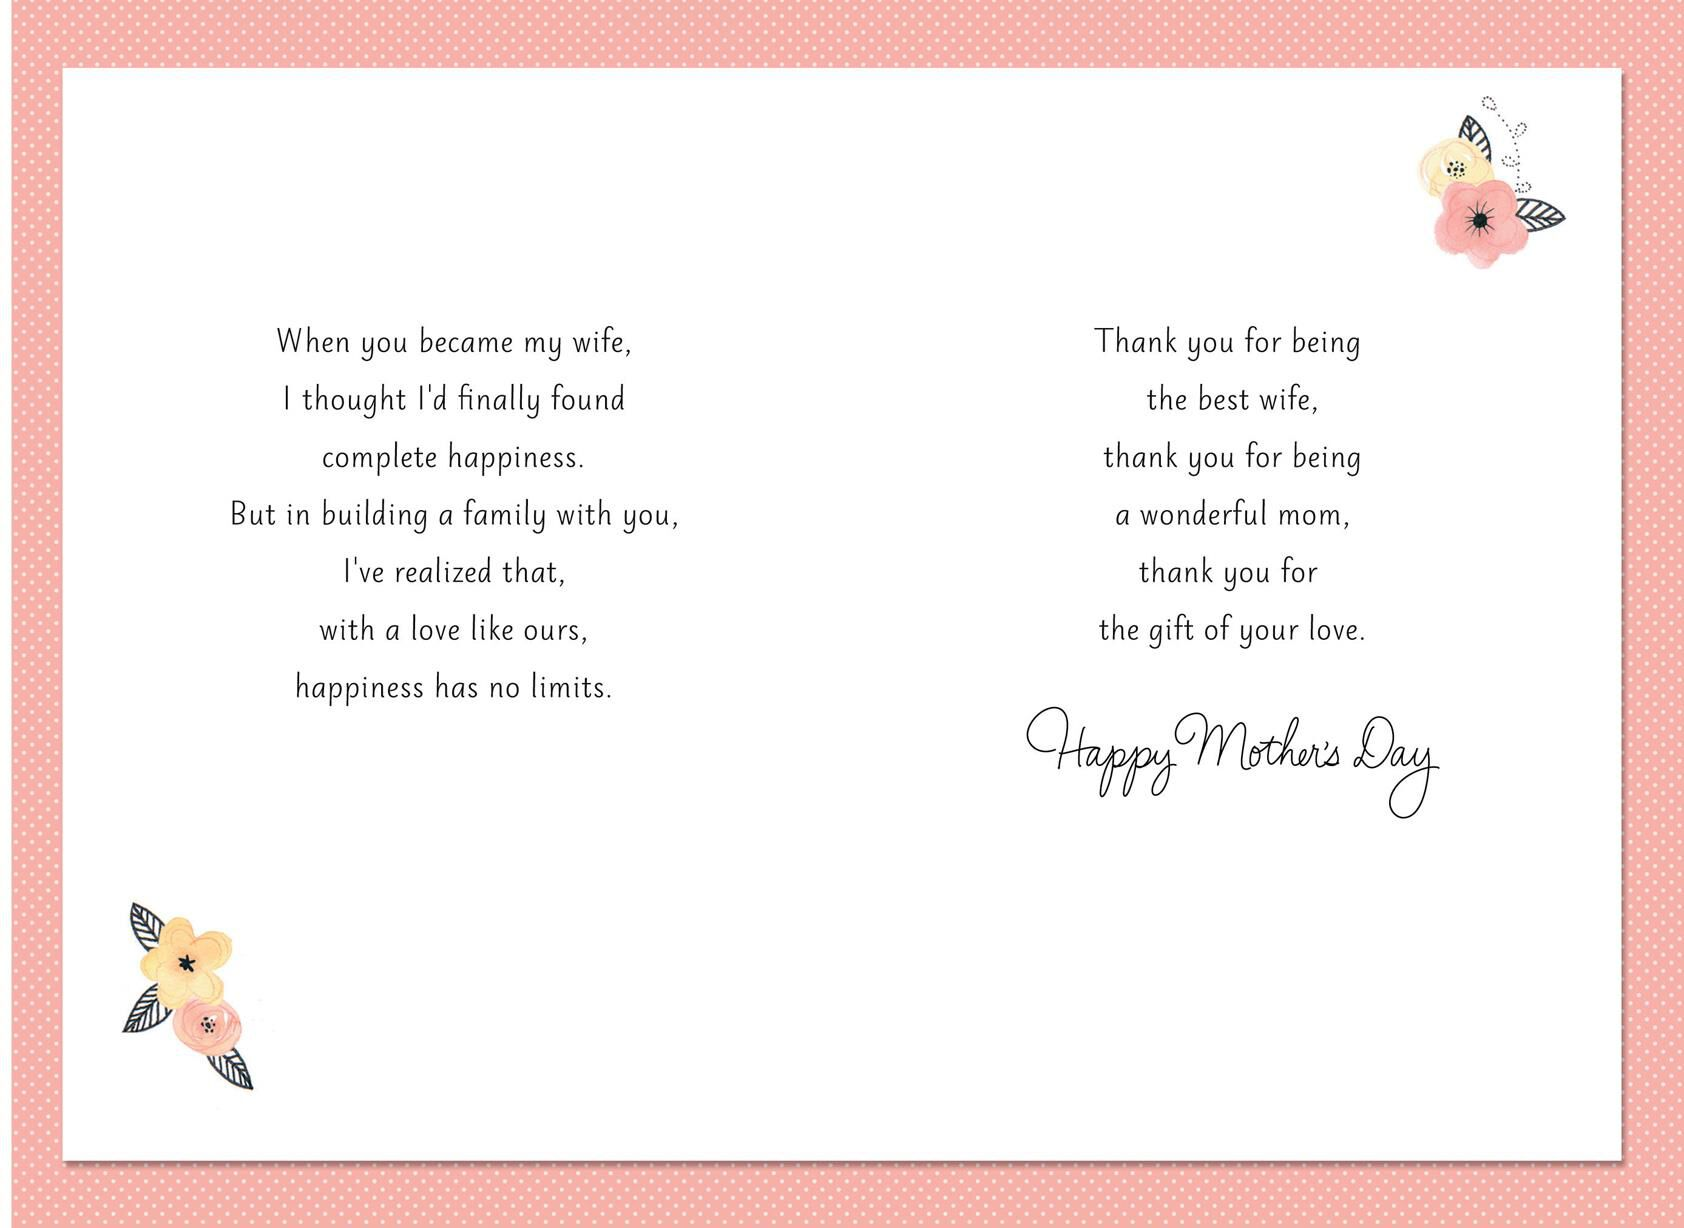 mothers day card from husband